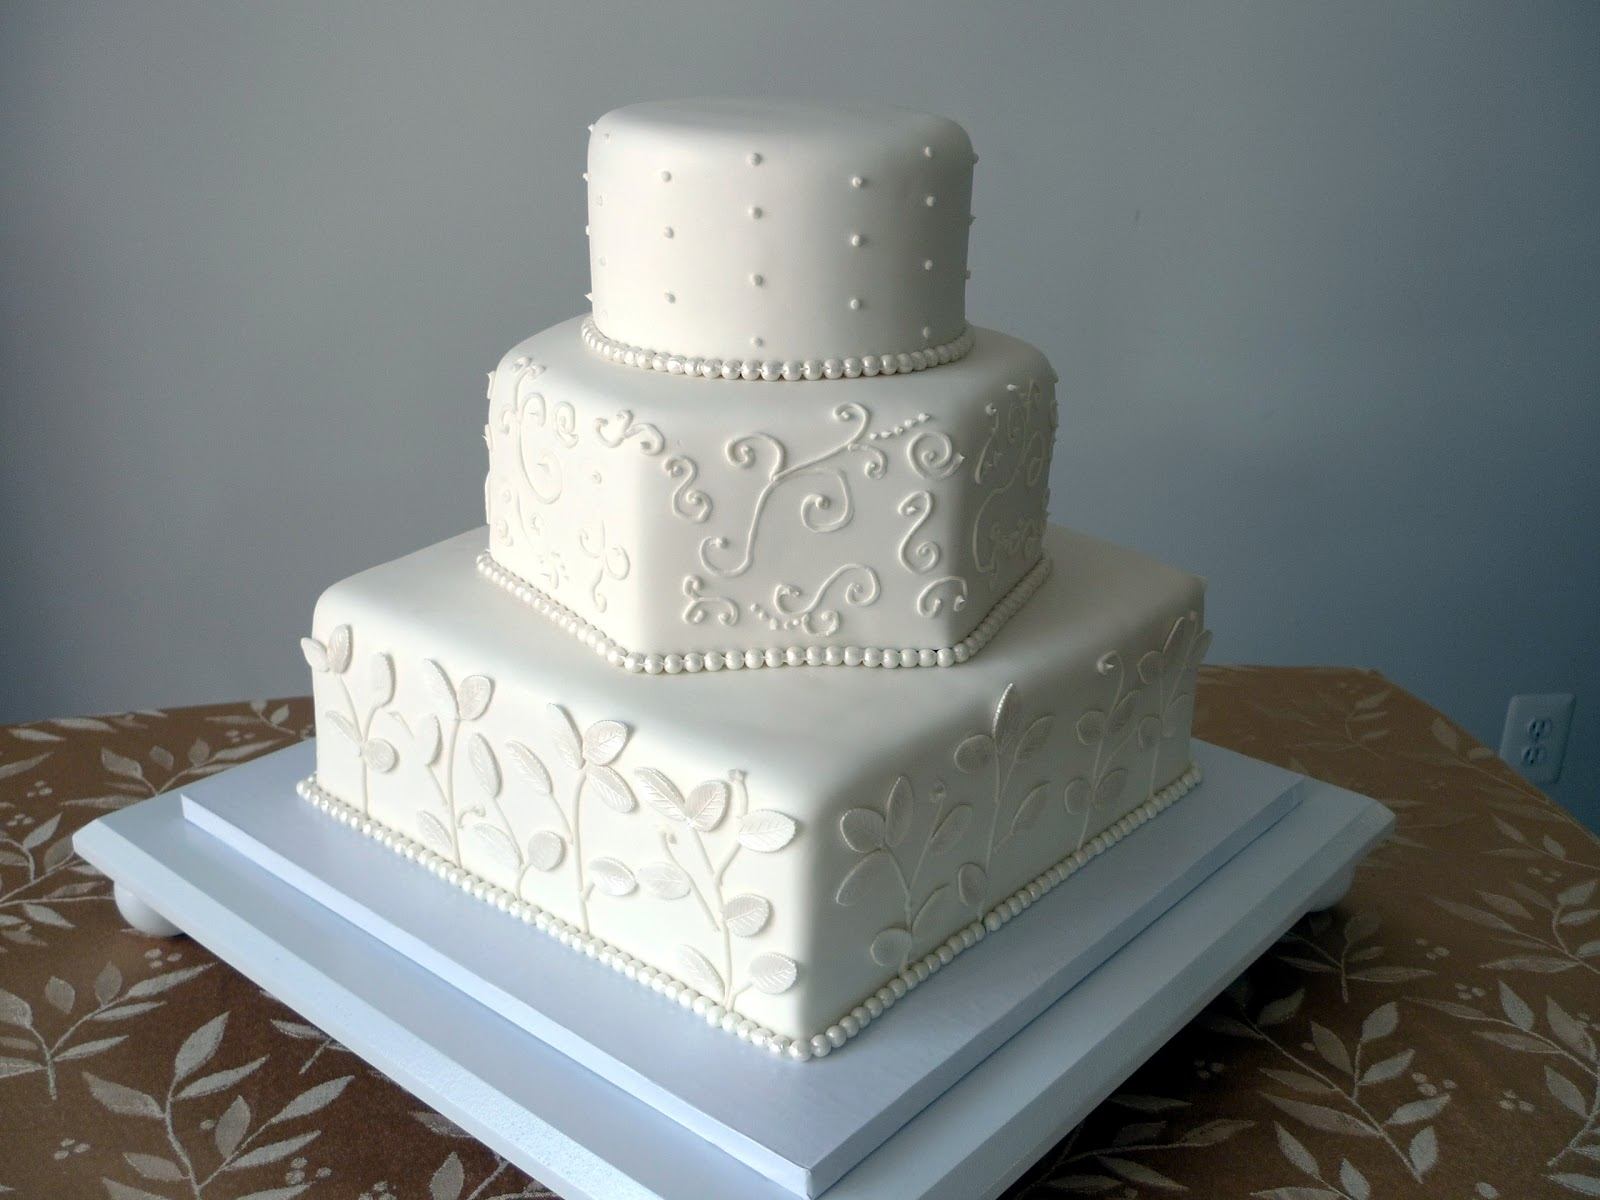 Tiered Wedding Cake Designs